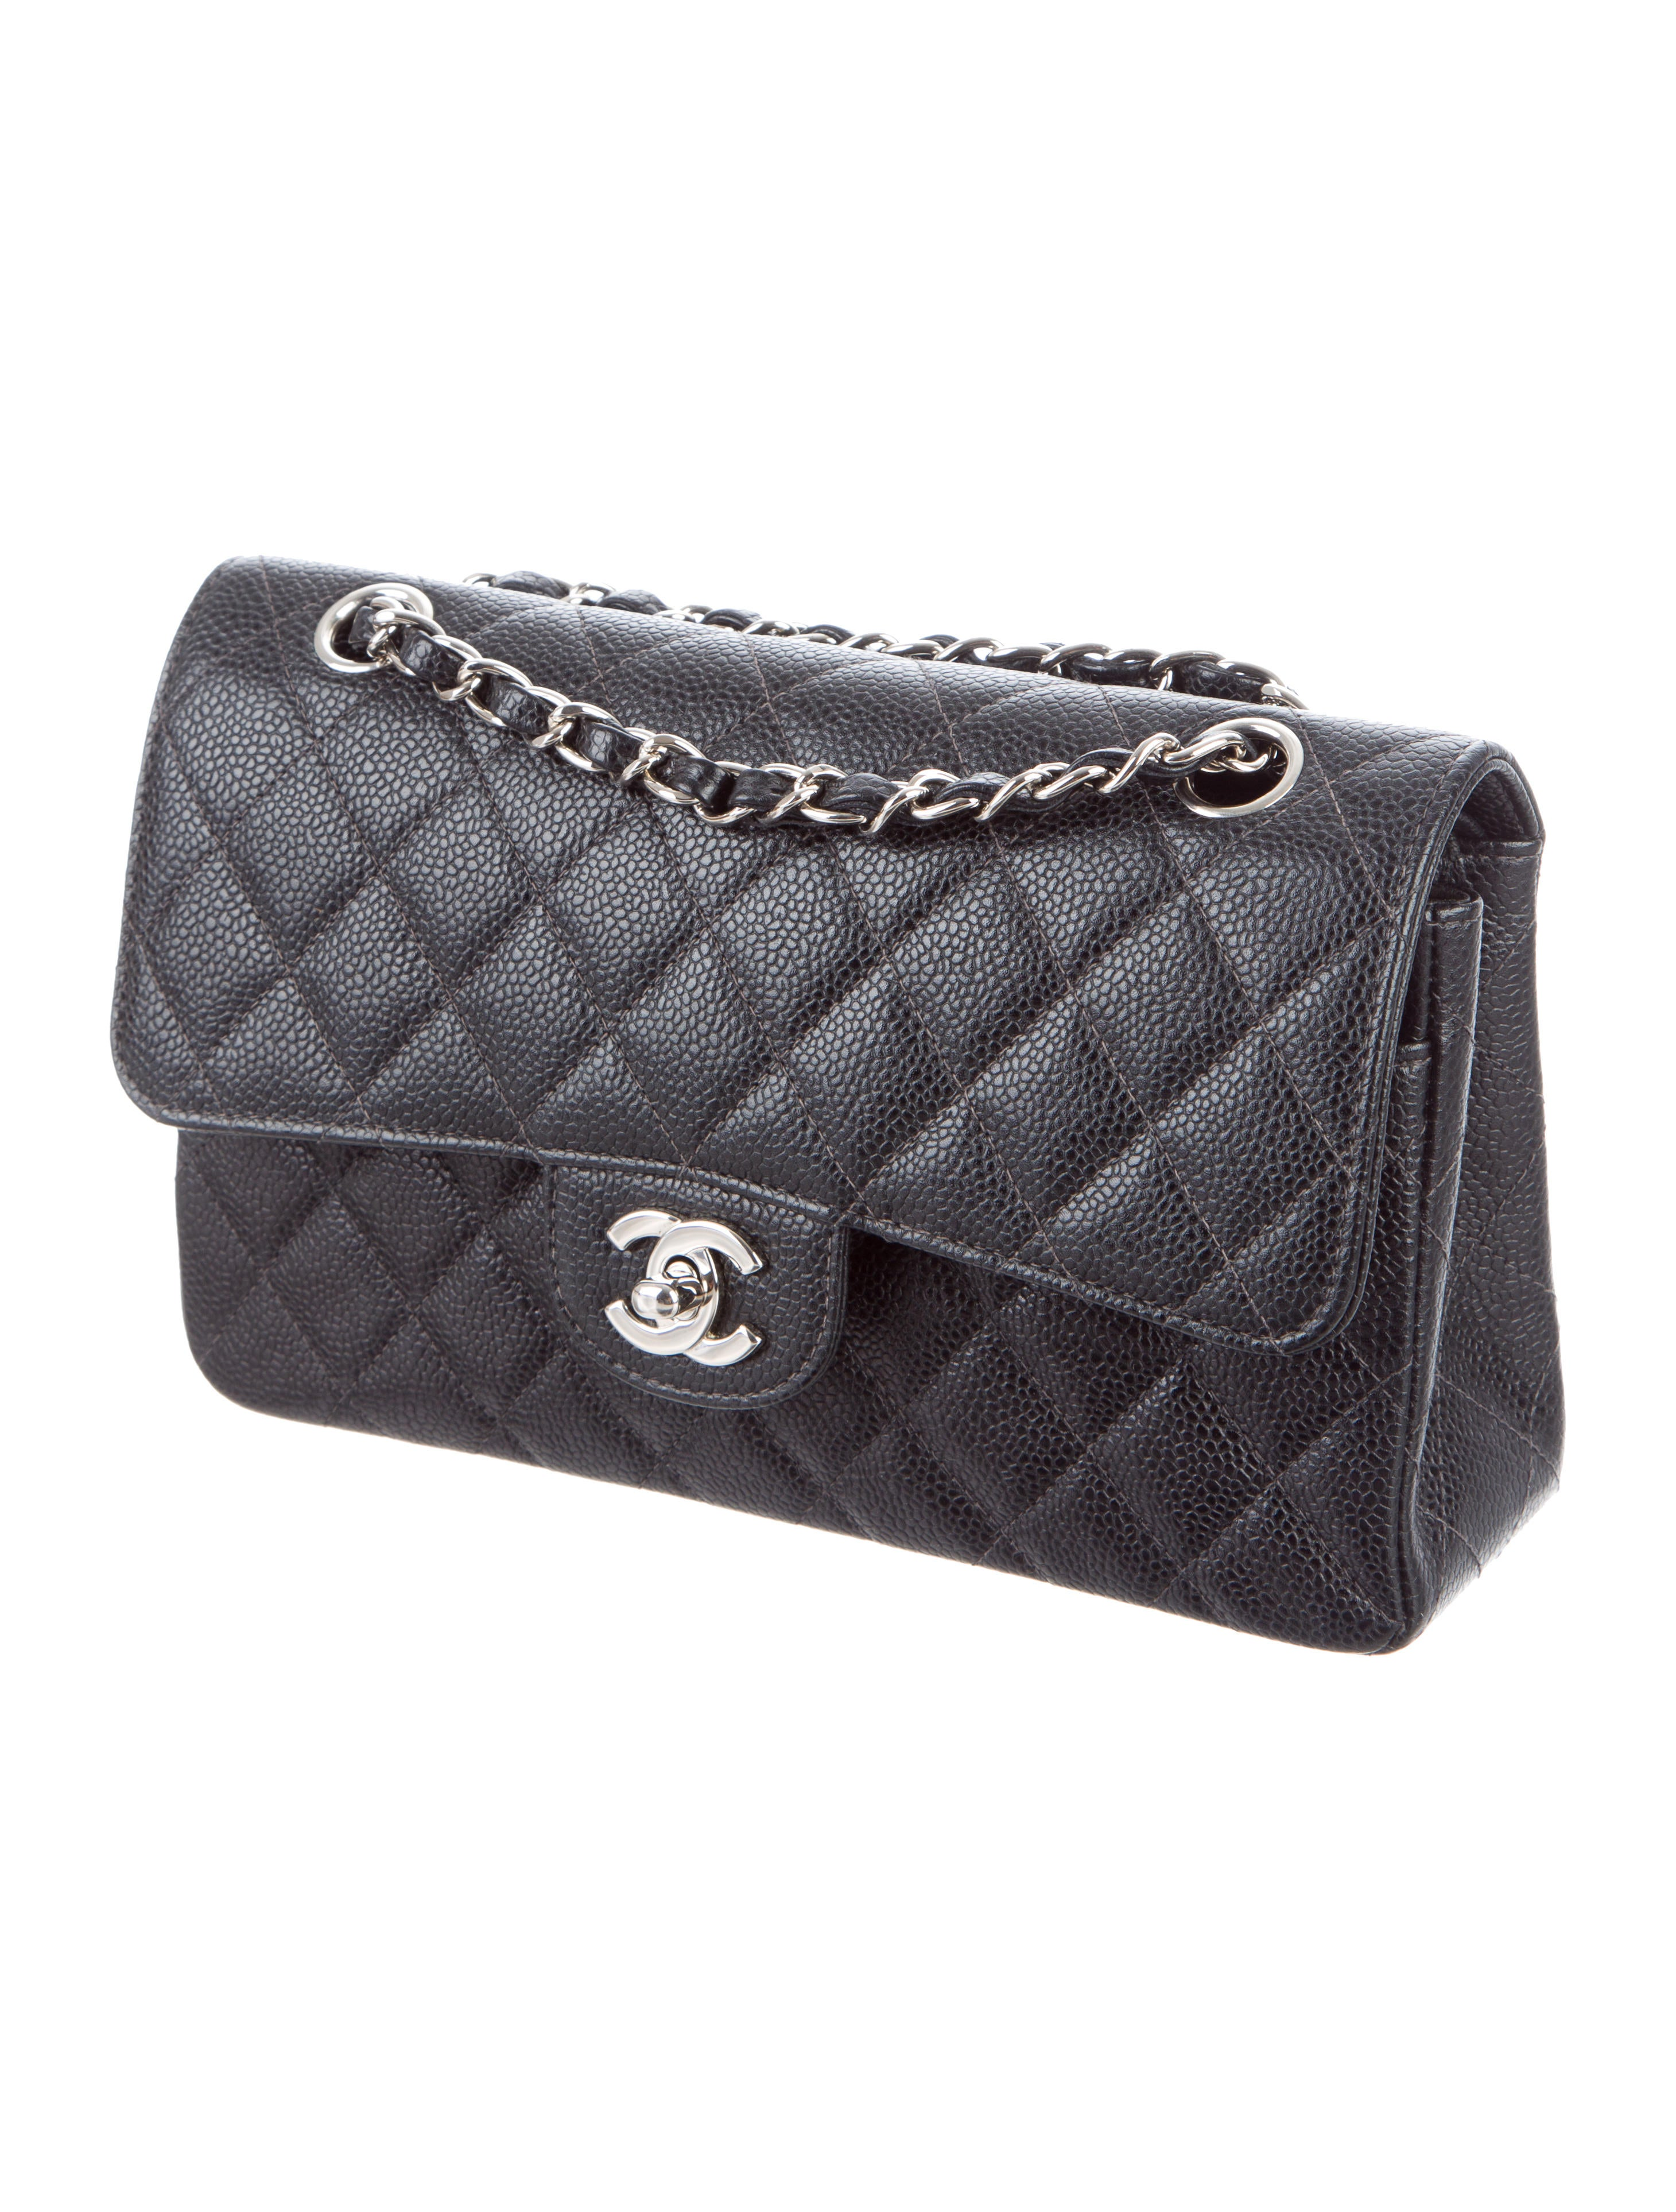 8c5c09526e76 Chanel Flap Bag Small Caviar. Chanel Black Quilted Caviar Small Classic ...